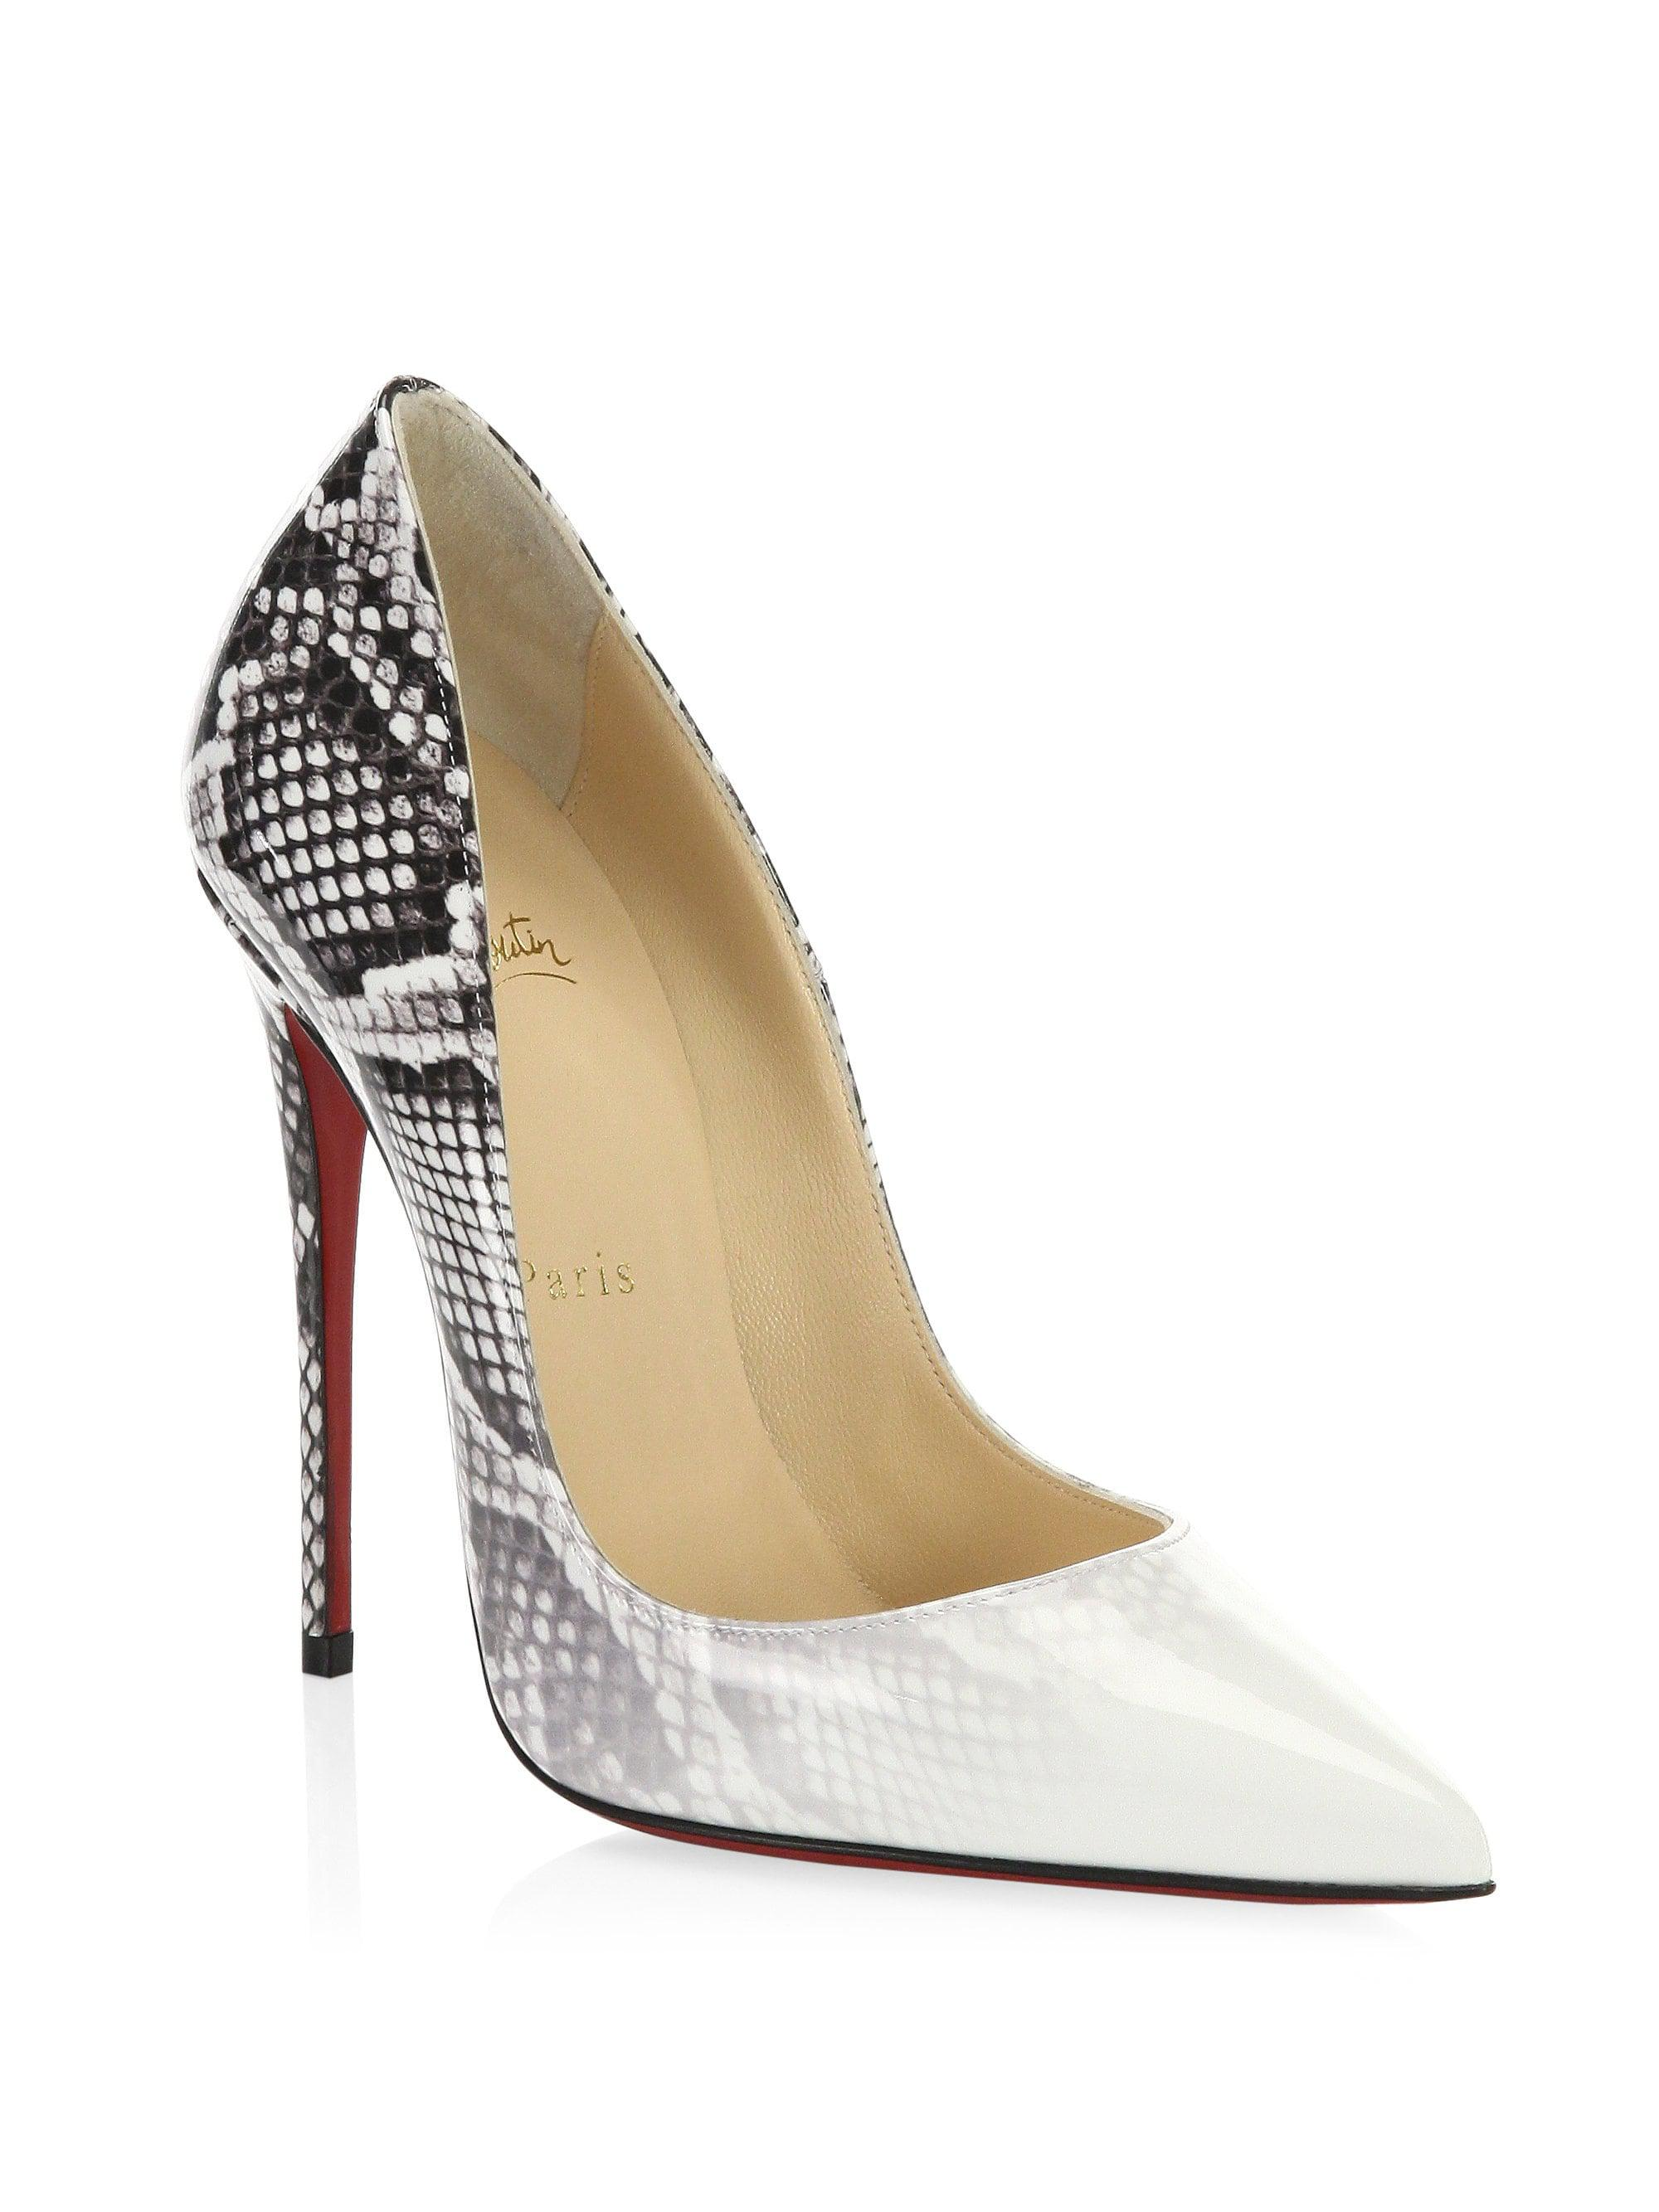 buy popular eaf07 85352 Christian Louboutin White So Kate Patent Leather Heels